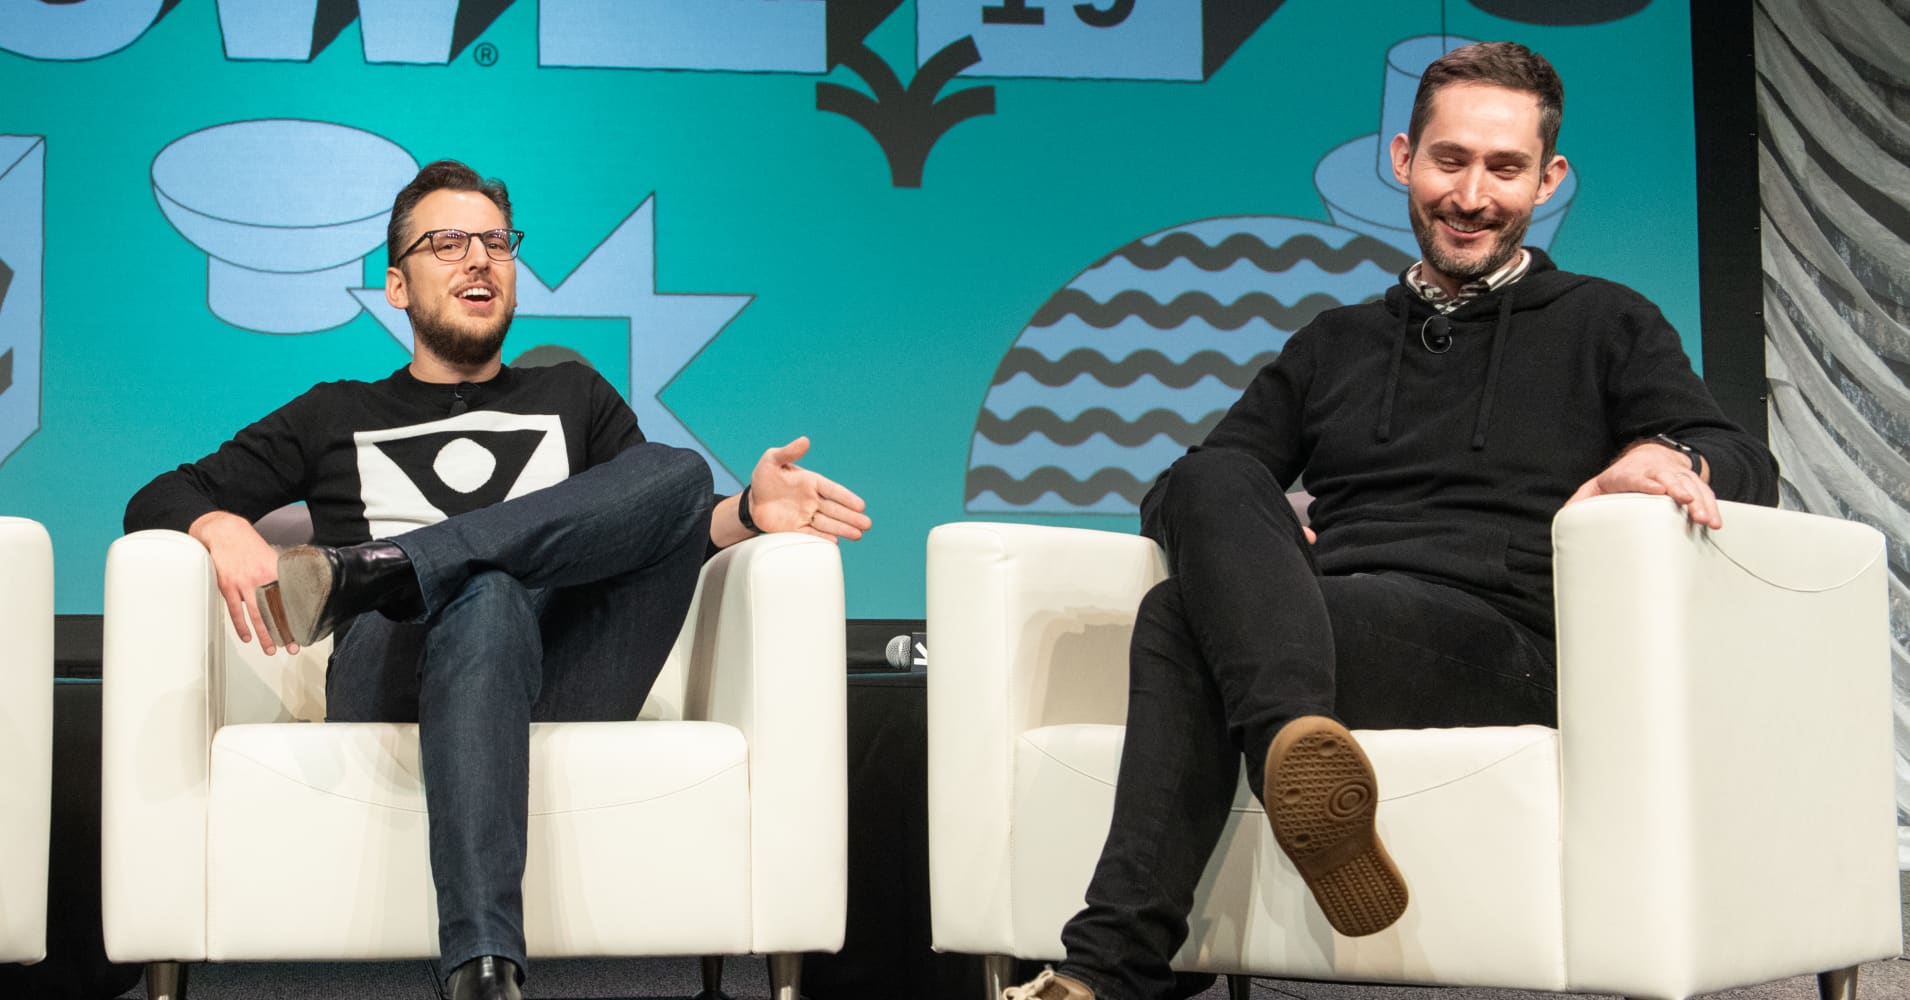 Instagram co-founders Mike Krieger (L) and Kevin Systrom at the 2019 SXSW Conference and Festival at the Austin Convention Center on March 11, 2019 in Austin, Texas.